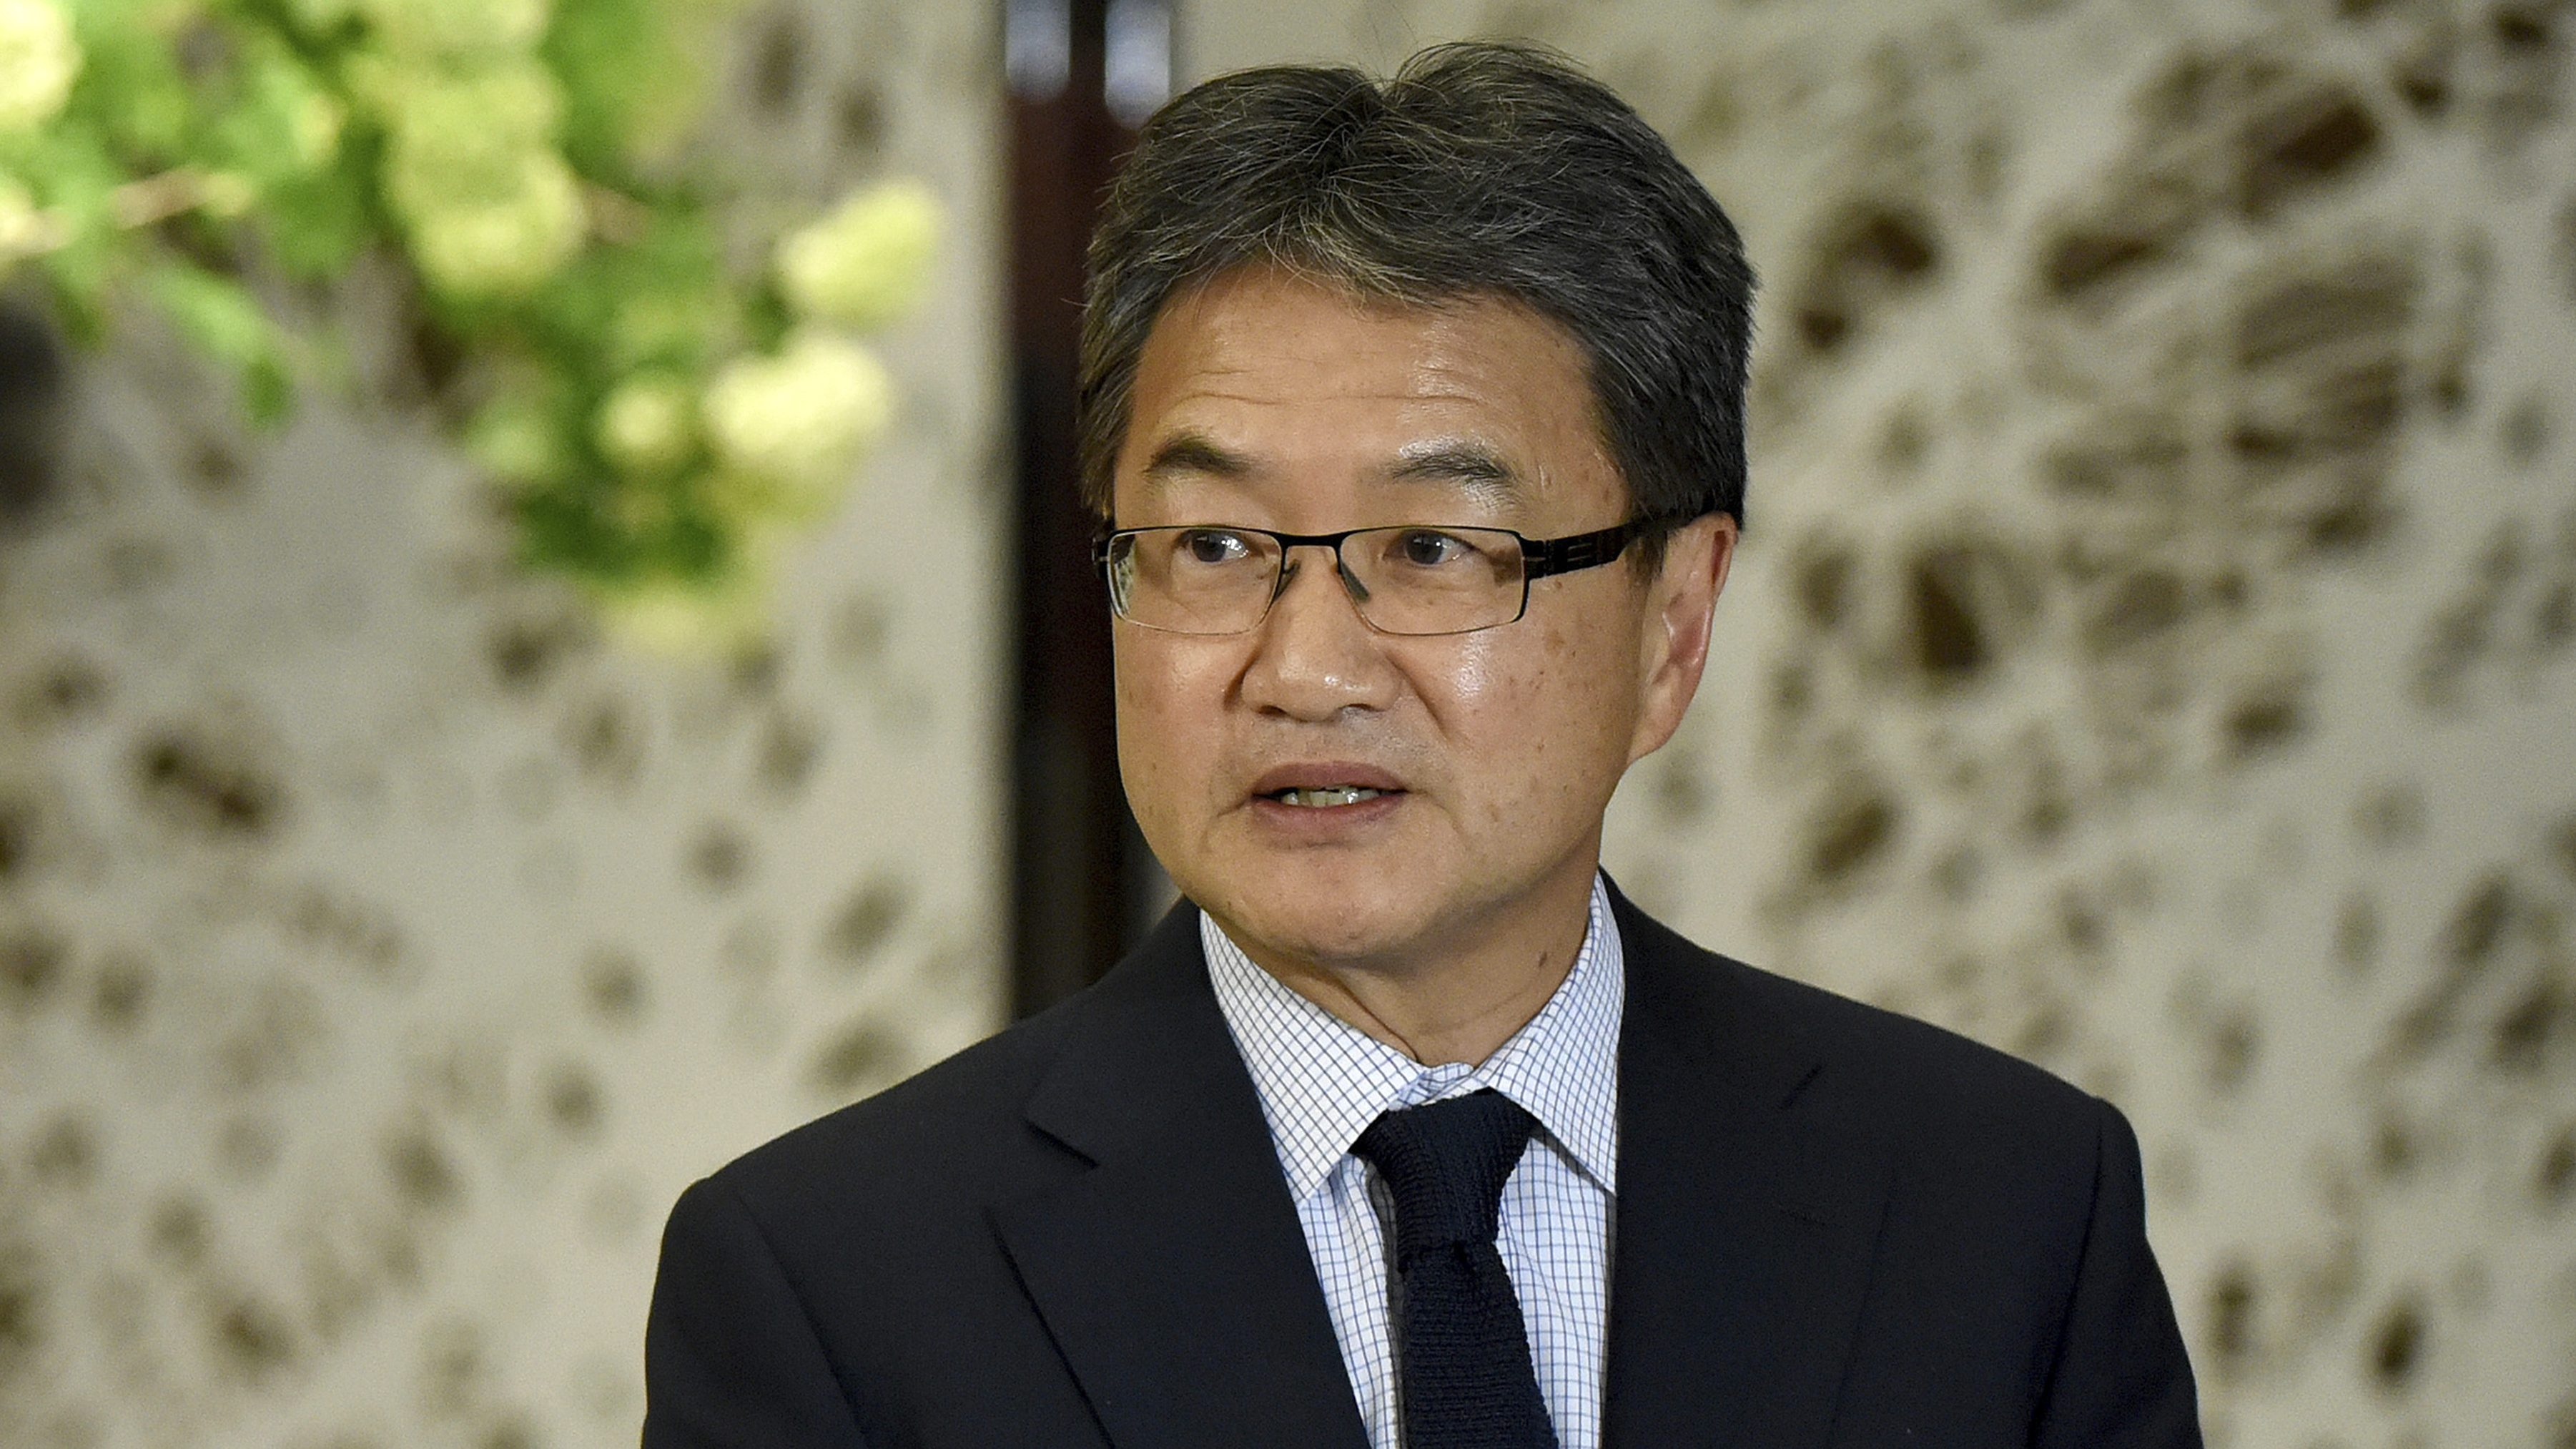 "In this April 25, 2017, file photo, U.S. special envoy for North Korea policy Joseph Yun speaks in Tokyo. It took months of ""quiet diplomacy,"" a change in U.S. presidents and an American diplomat's extraordinary, secret visit to Pyongyang to bring Otto Warmbier home. Yun was a household name to almost no one before Warmbier's return to Ohio on June 14, yet he joins an exceedingly short list of U.S. officials to set foot in furtive North Korea in recent years. The last such visit is believed to have been in November 2014, when former National Intelligence Director James Clapper brought home two other jailed Americans."